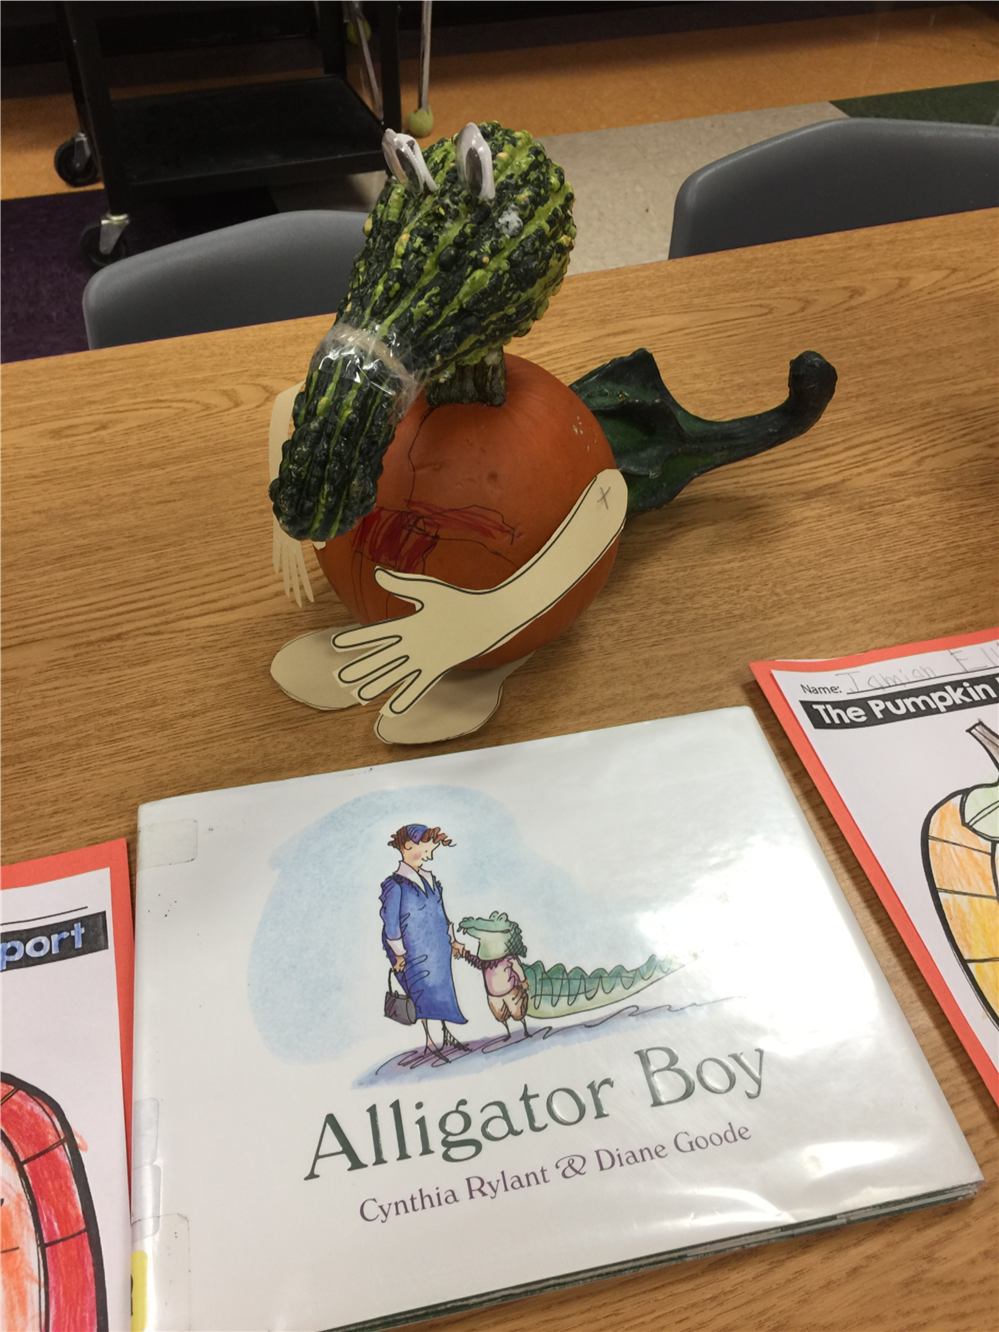 Alligator Boy